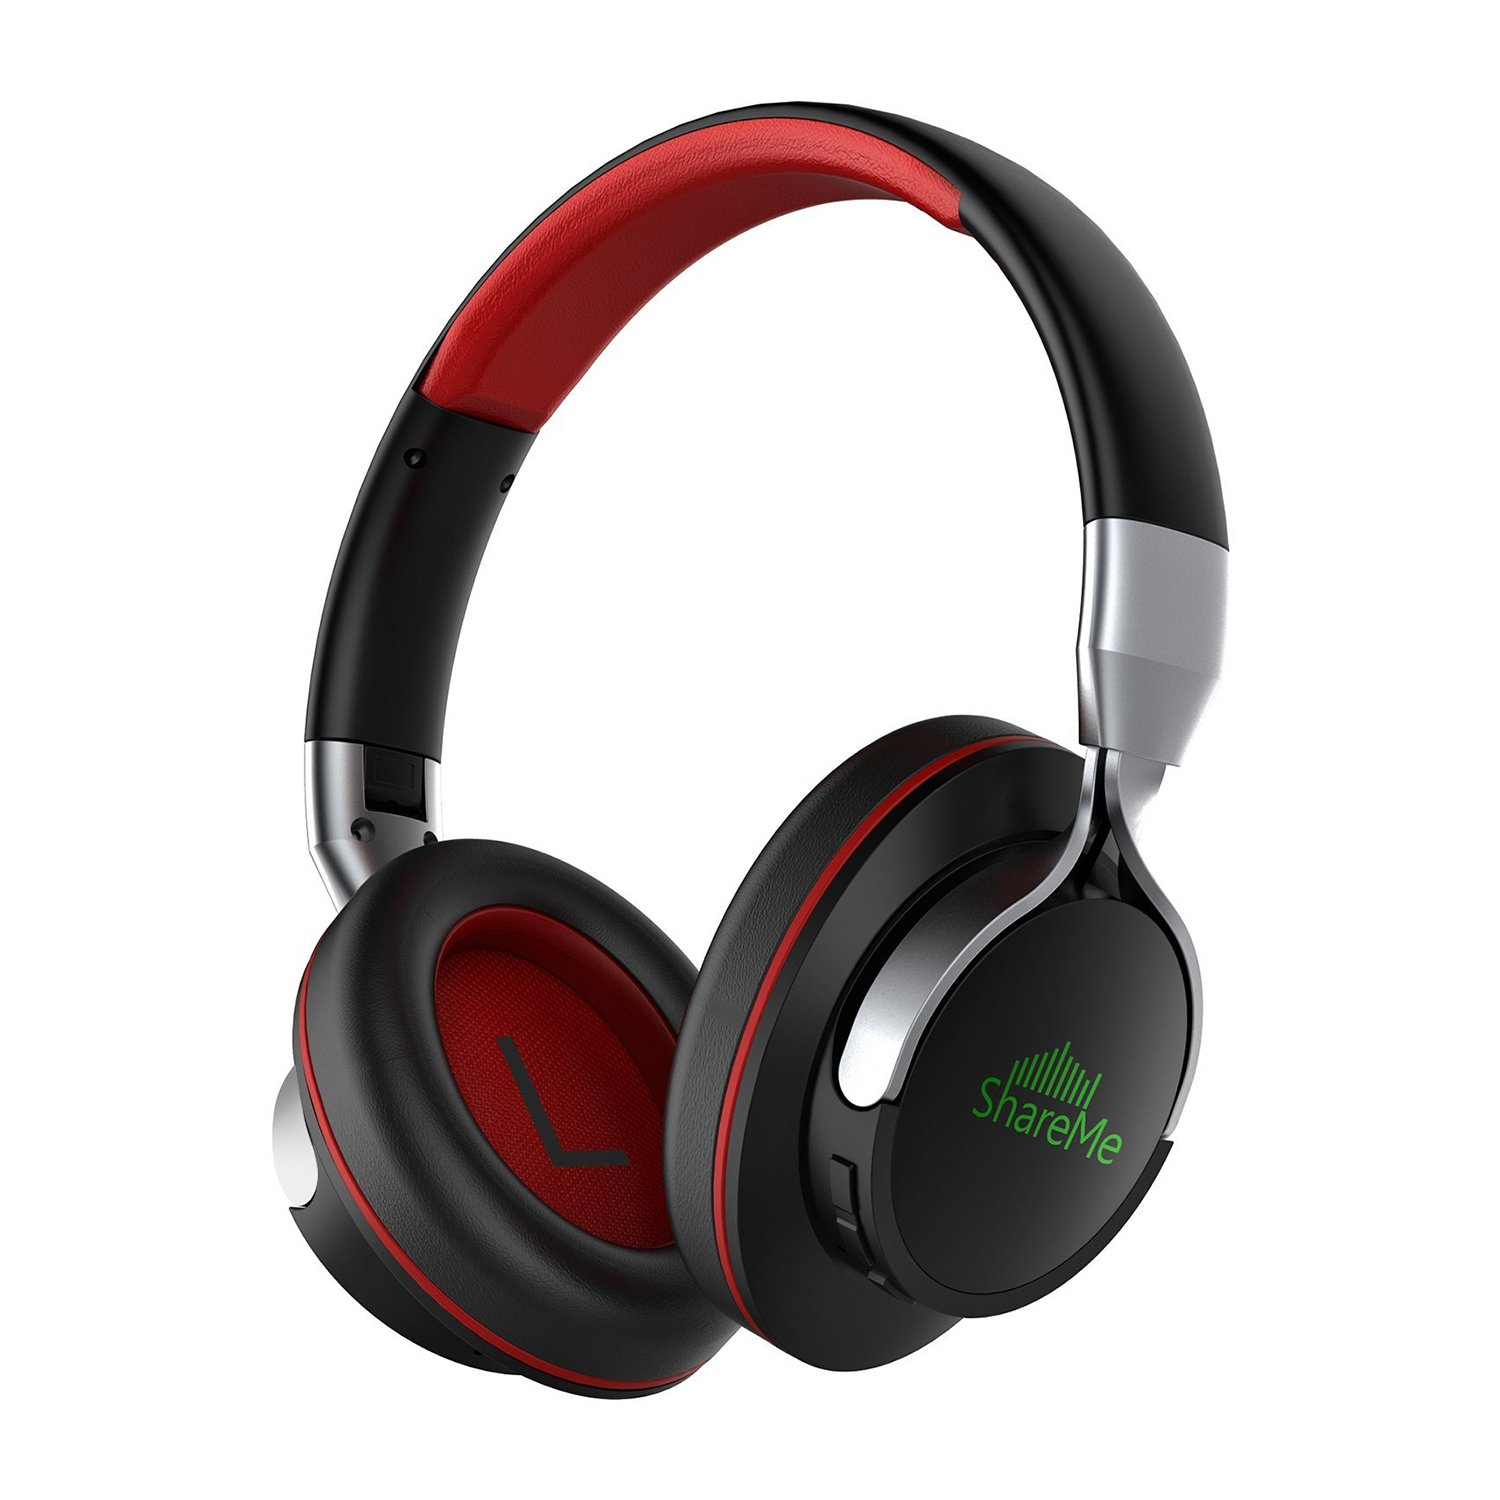 Advanced ShareMe Tech Auriculares Bluetooth con Micrófono Hi-Fi Deep Bass Auriculares Inalámbricos Sobre El Oído, Almohadillas de Protección Cómodo, 18 Horas Playtime Para Viaje - Negro y Rojo Mixcder 961B86100100UK